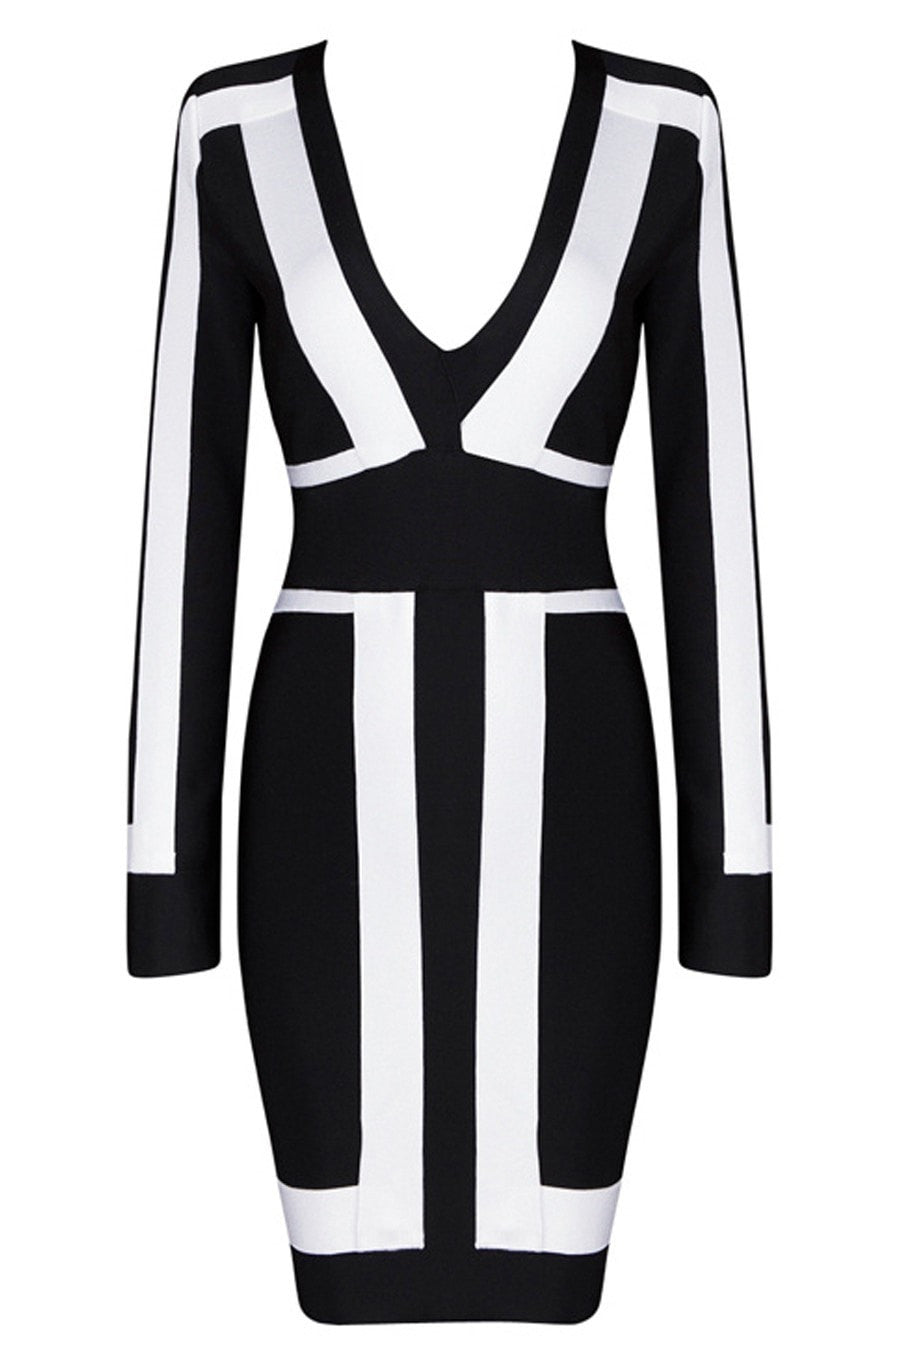 Honey Couture BROOKLYN Black & White Long Sleeve Bandage Dress Australian Online Store One Honey Boutique AfterPay ZipPay